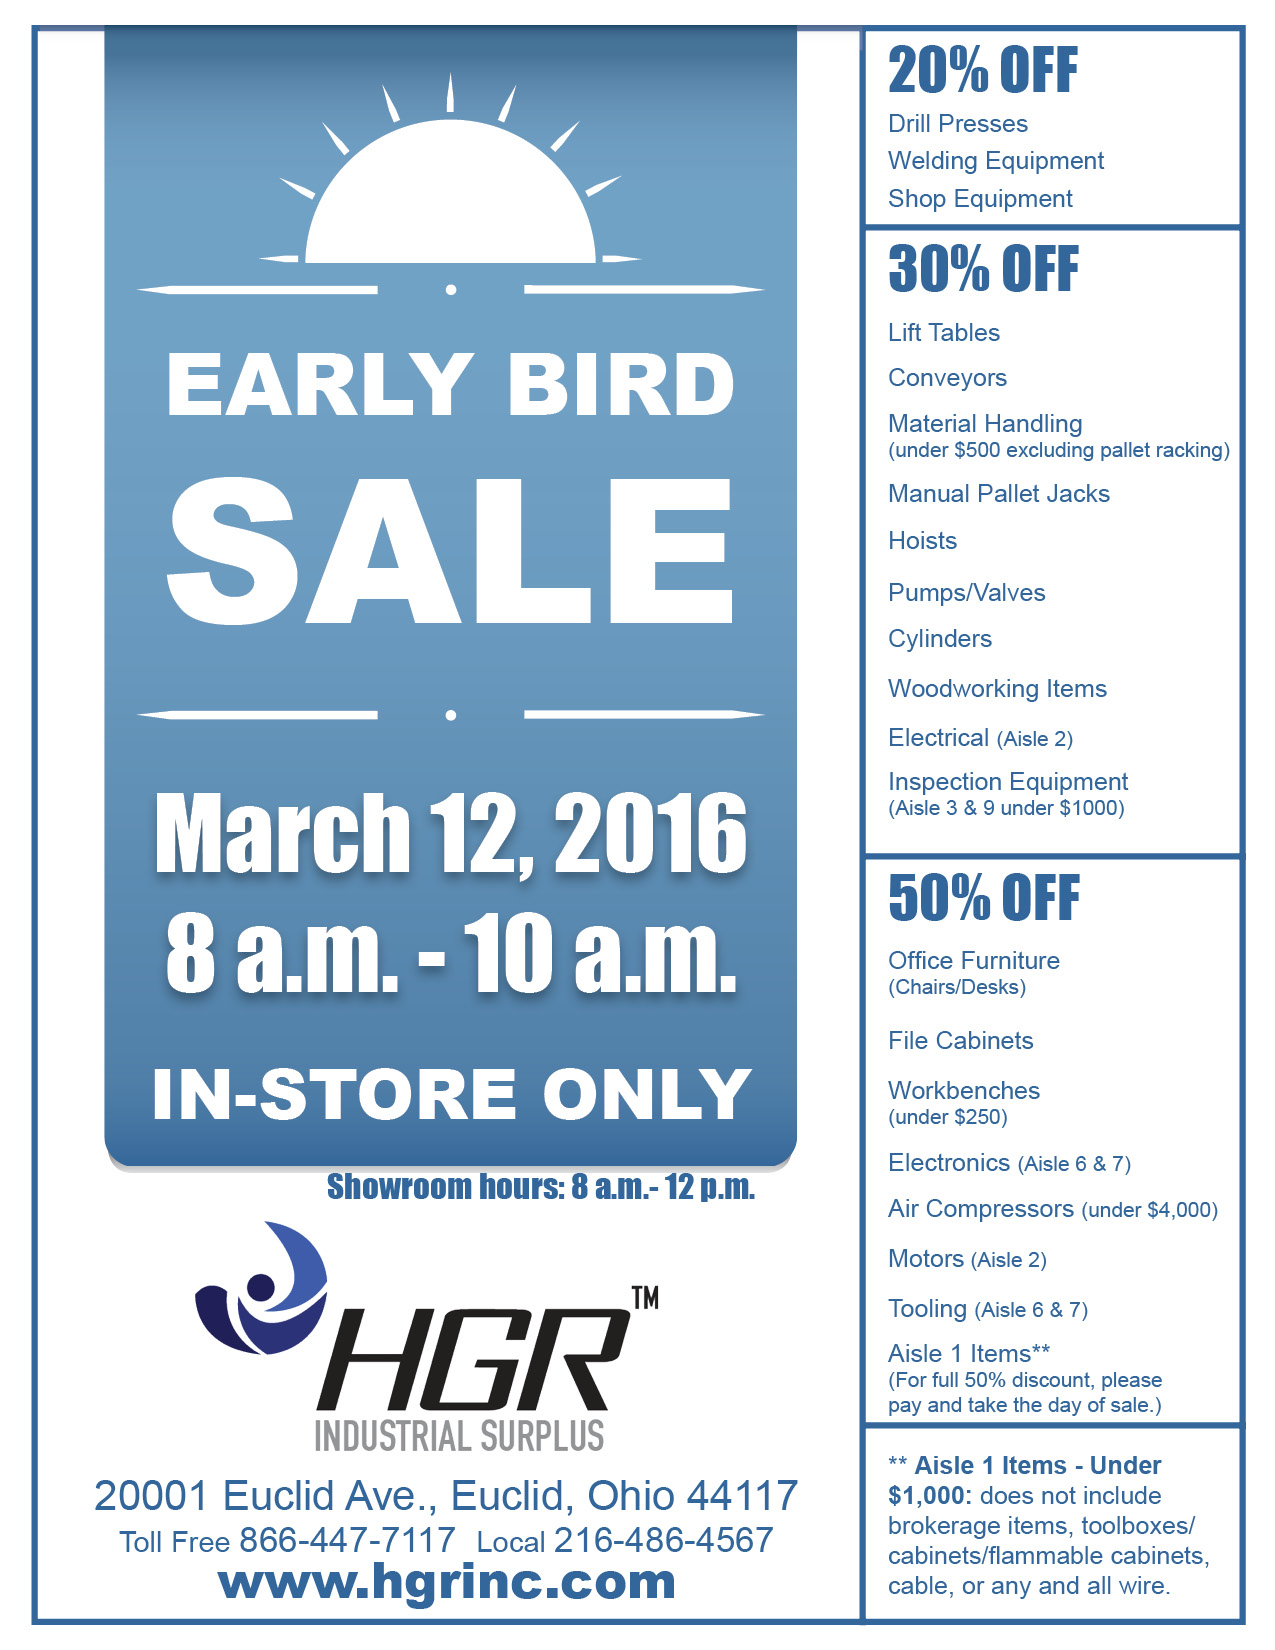 Early Bird Sale, Mar. 12